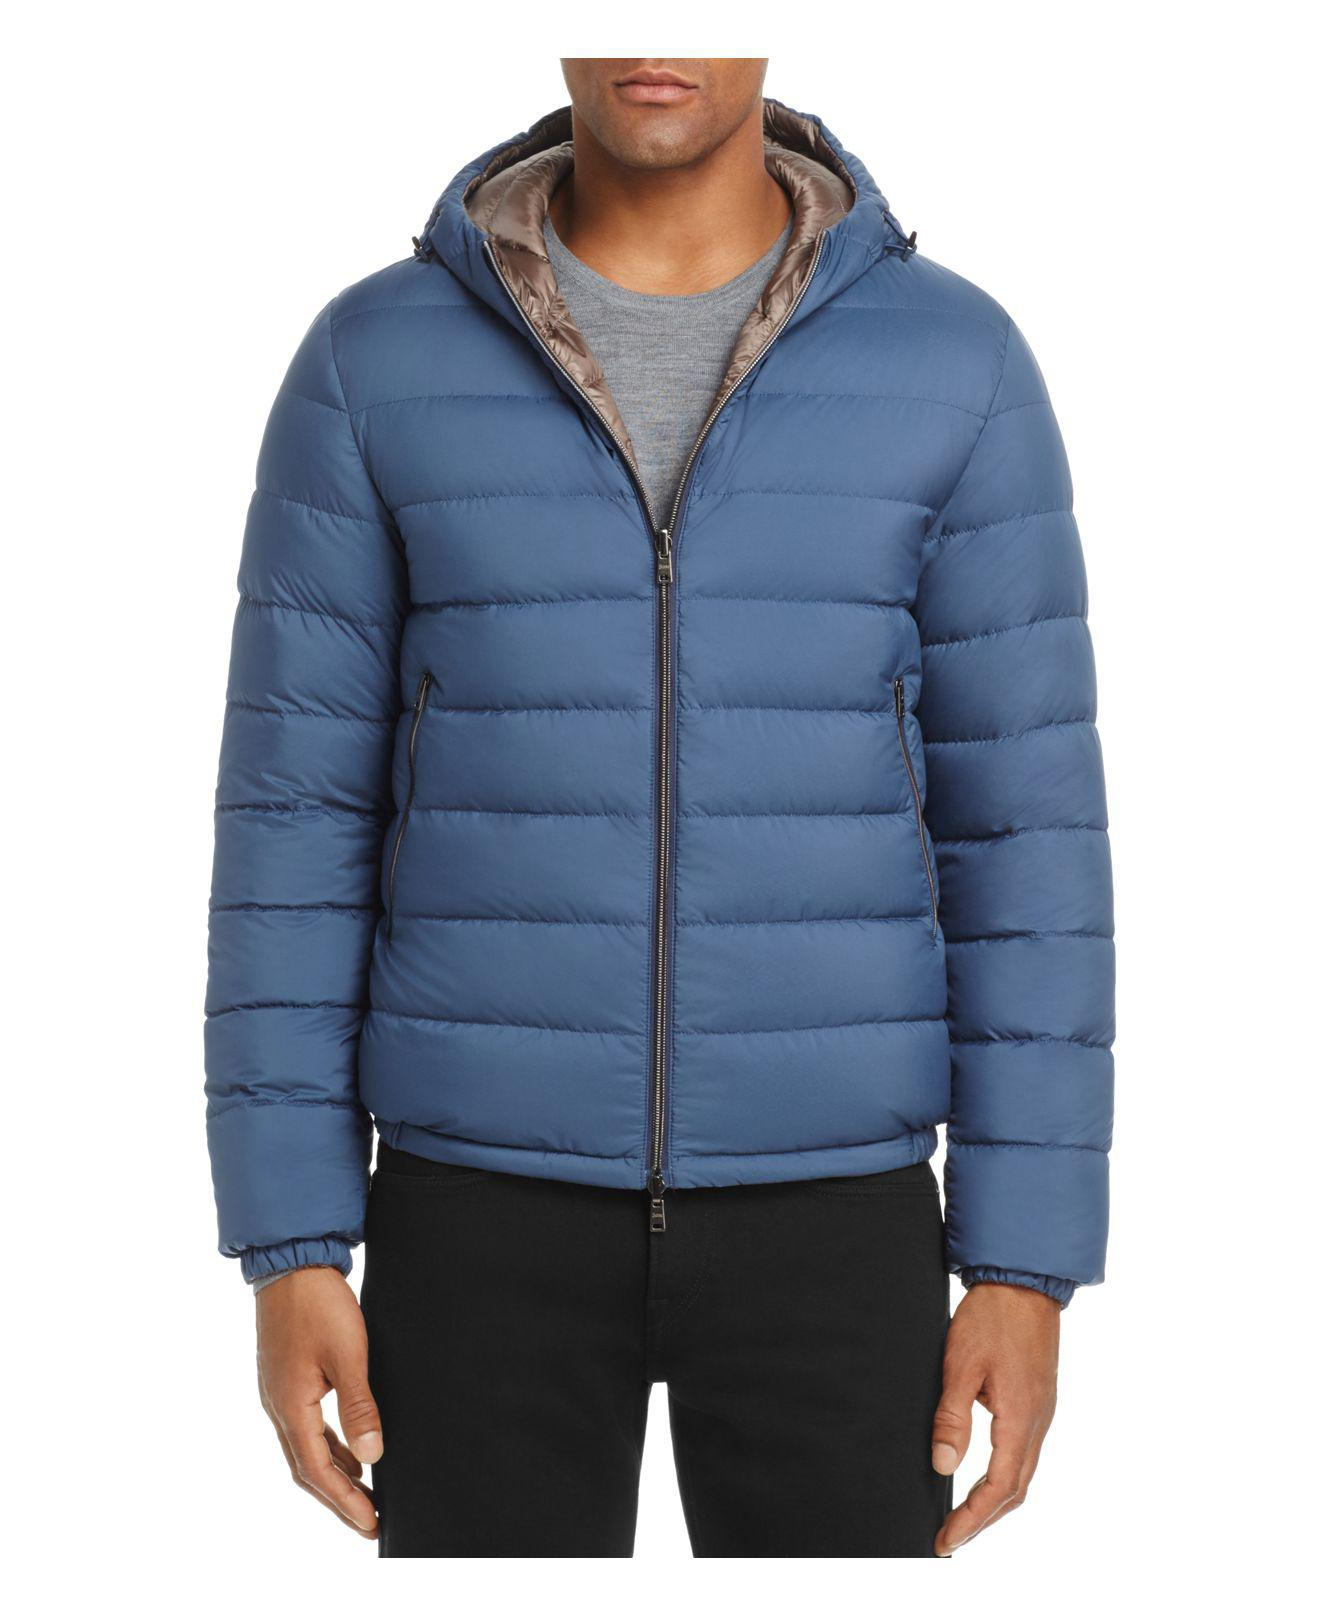 Herno Reversible Hooded Down Jacket In Blue For Men Lyst